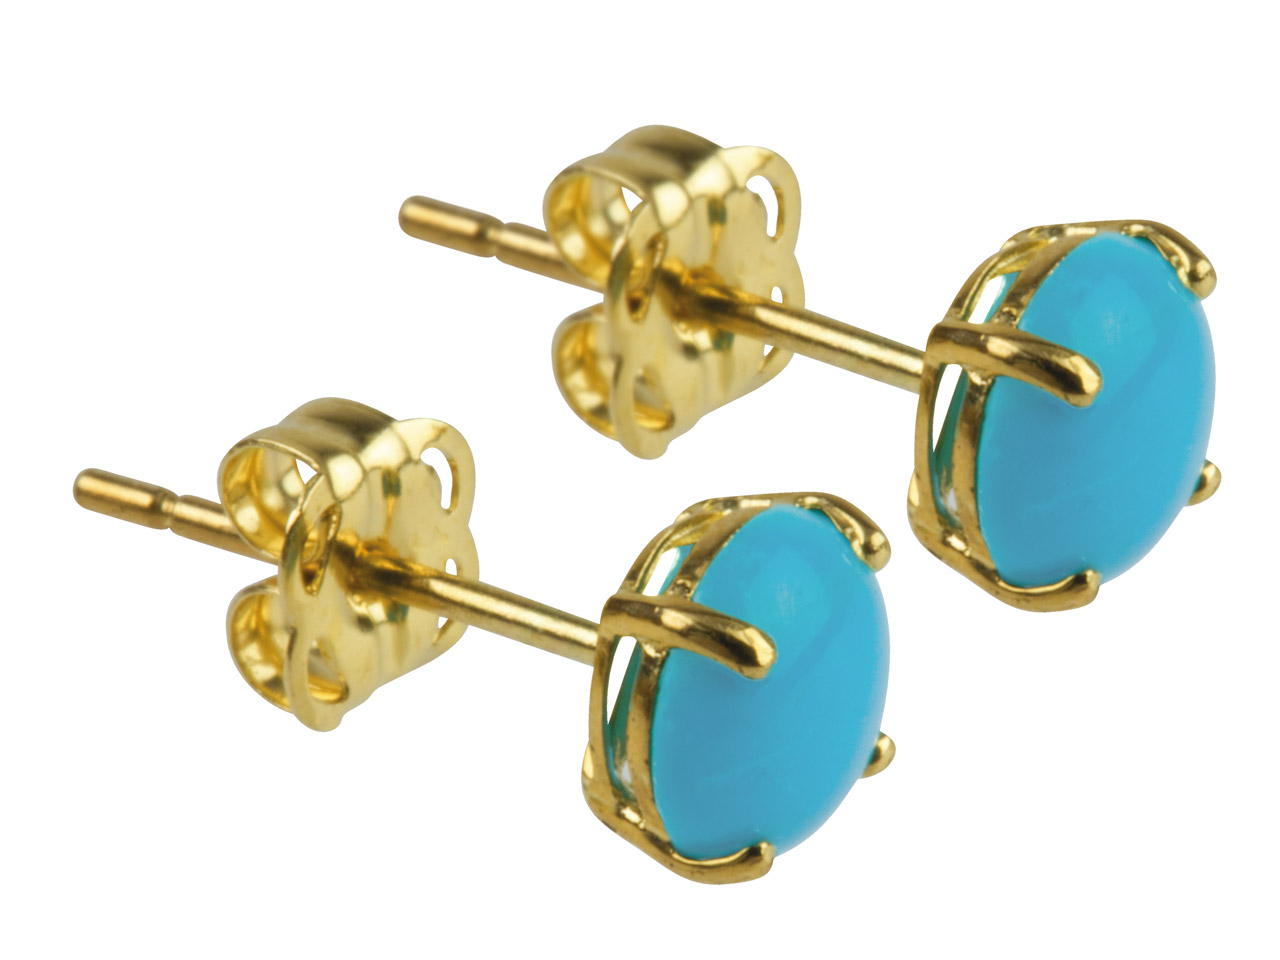 9ct Yellow Gold Birthstone Earrings 5mm Round Stabilised Turquoise      Cabochon - December